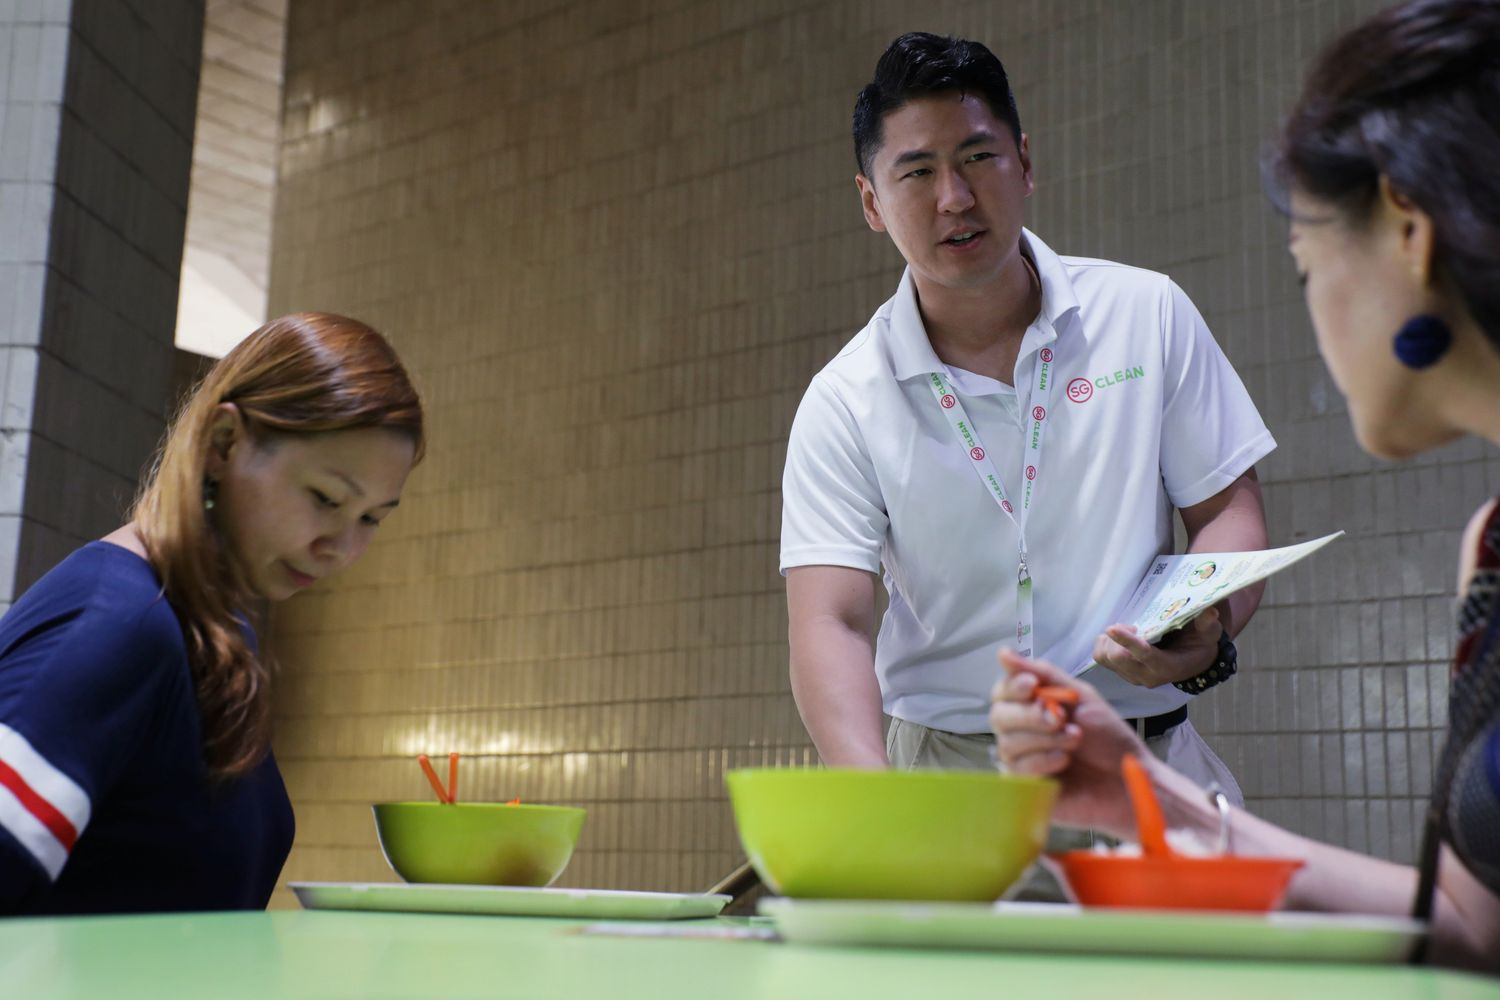 Jonathan Lau, a Jetstar pilot redeployed as a government virus awareness 'ambassador', speaks to diners about social distancing, following the outbreak of coronavirus disease at a food centre in Singapore on Friday. (Reuters photo)